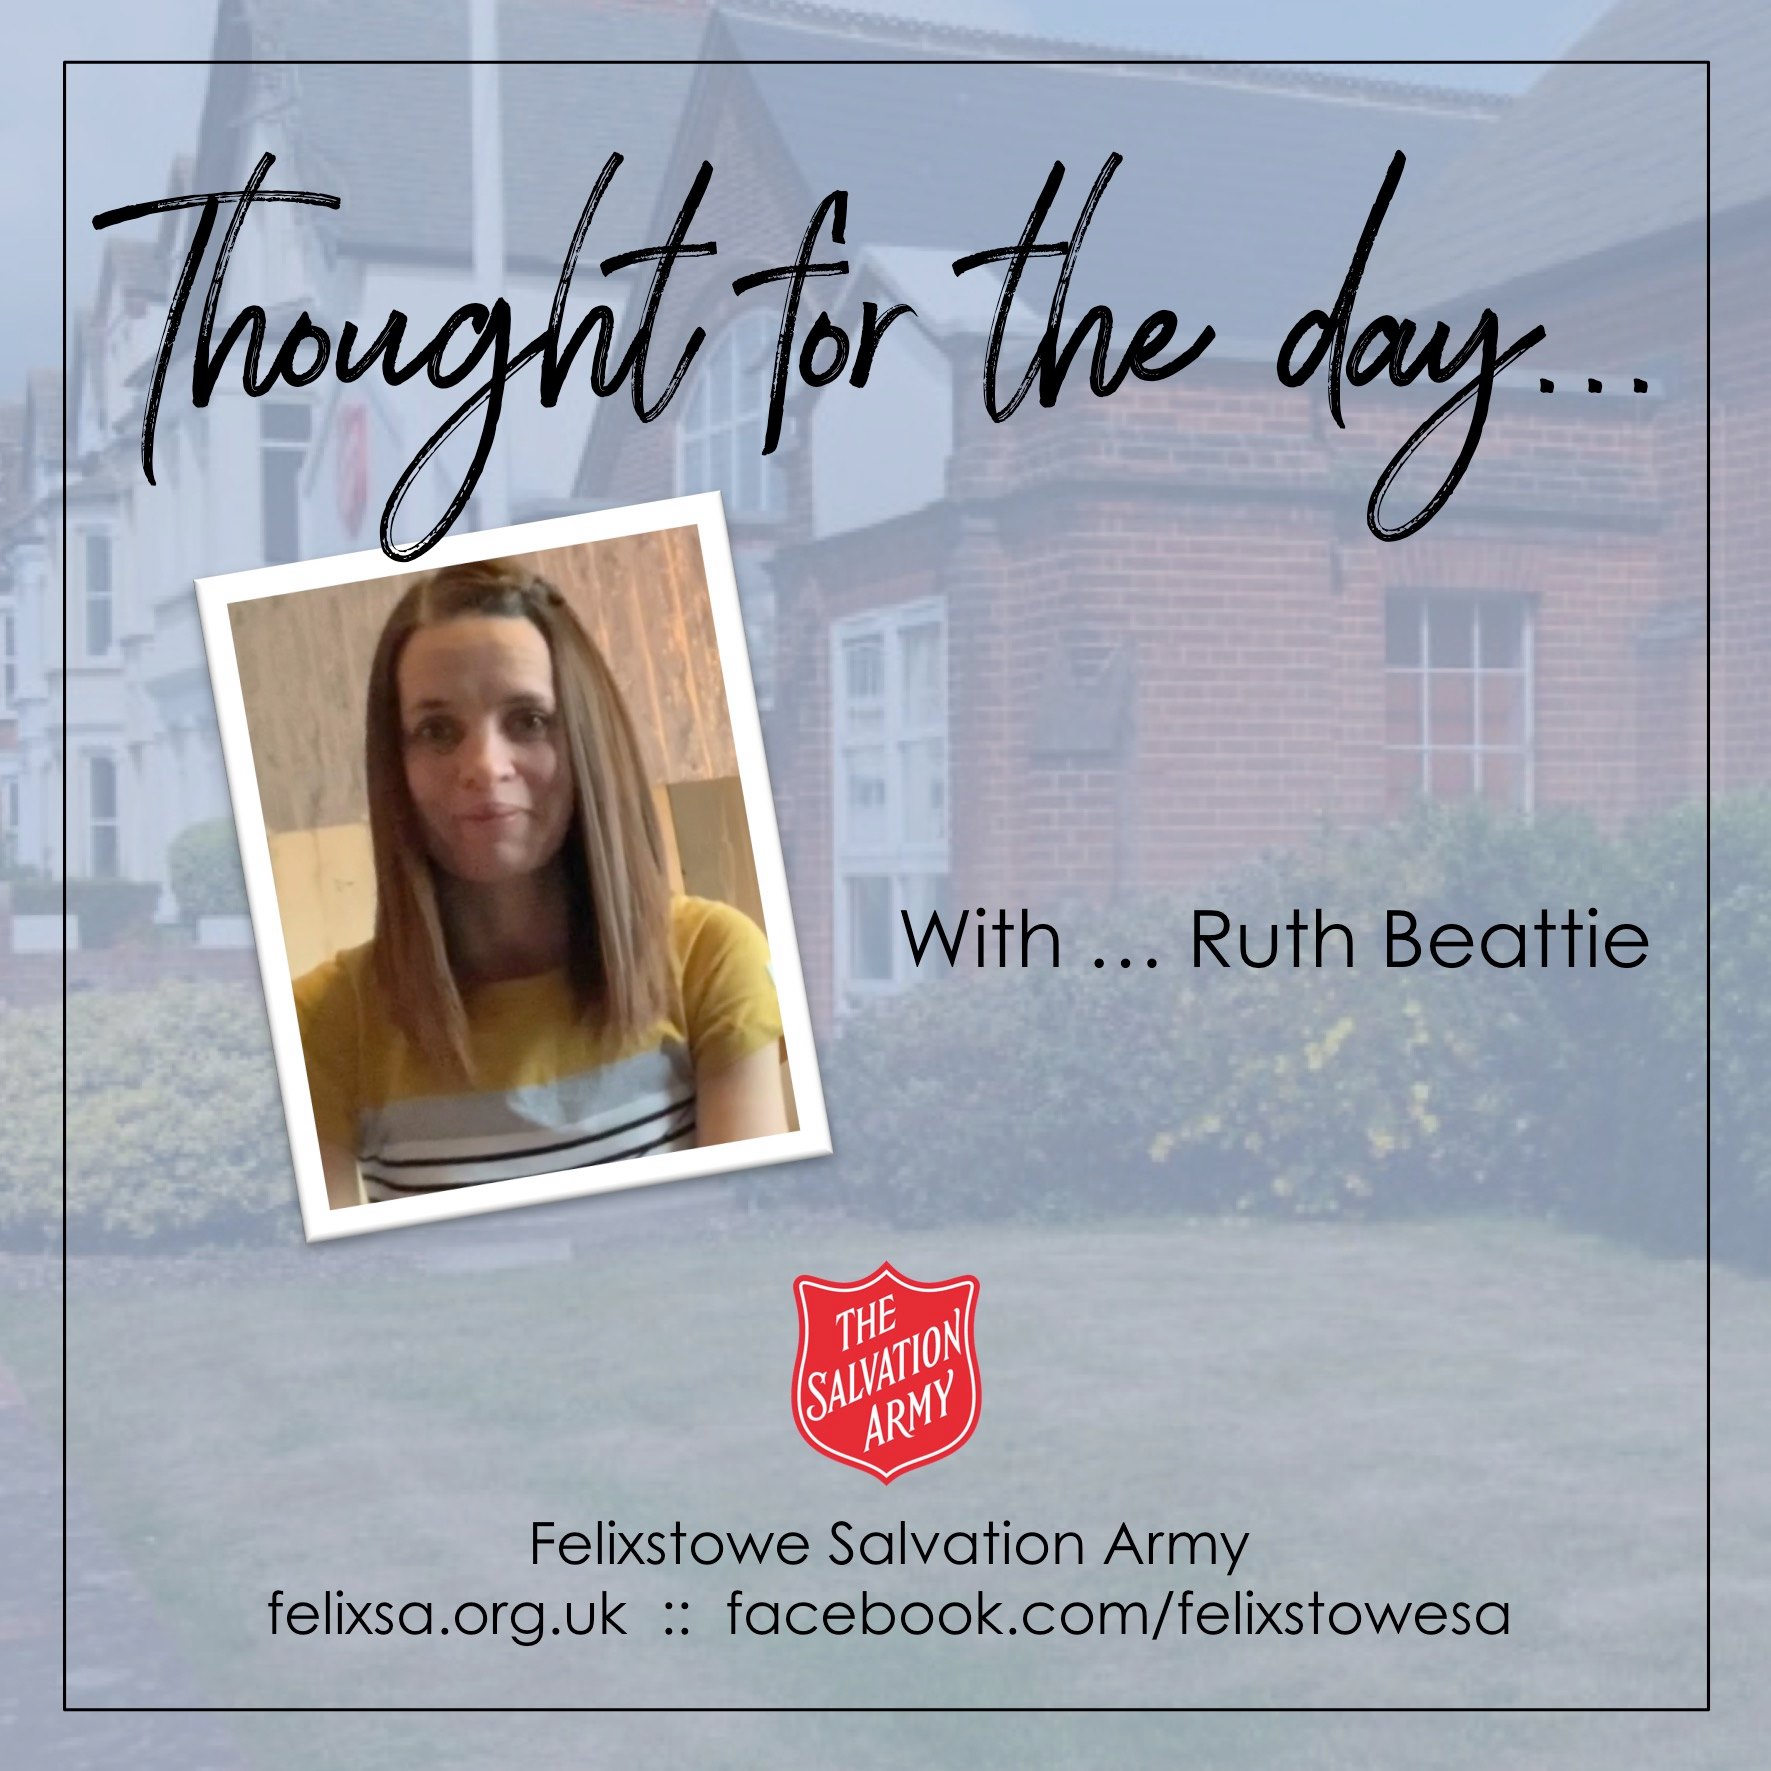 Thought for the Day with Ruth Beattie (Divisional Youth Specialist)